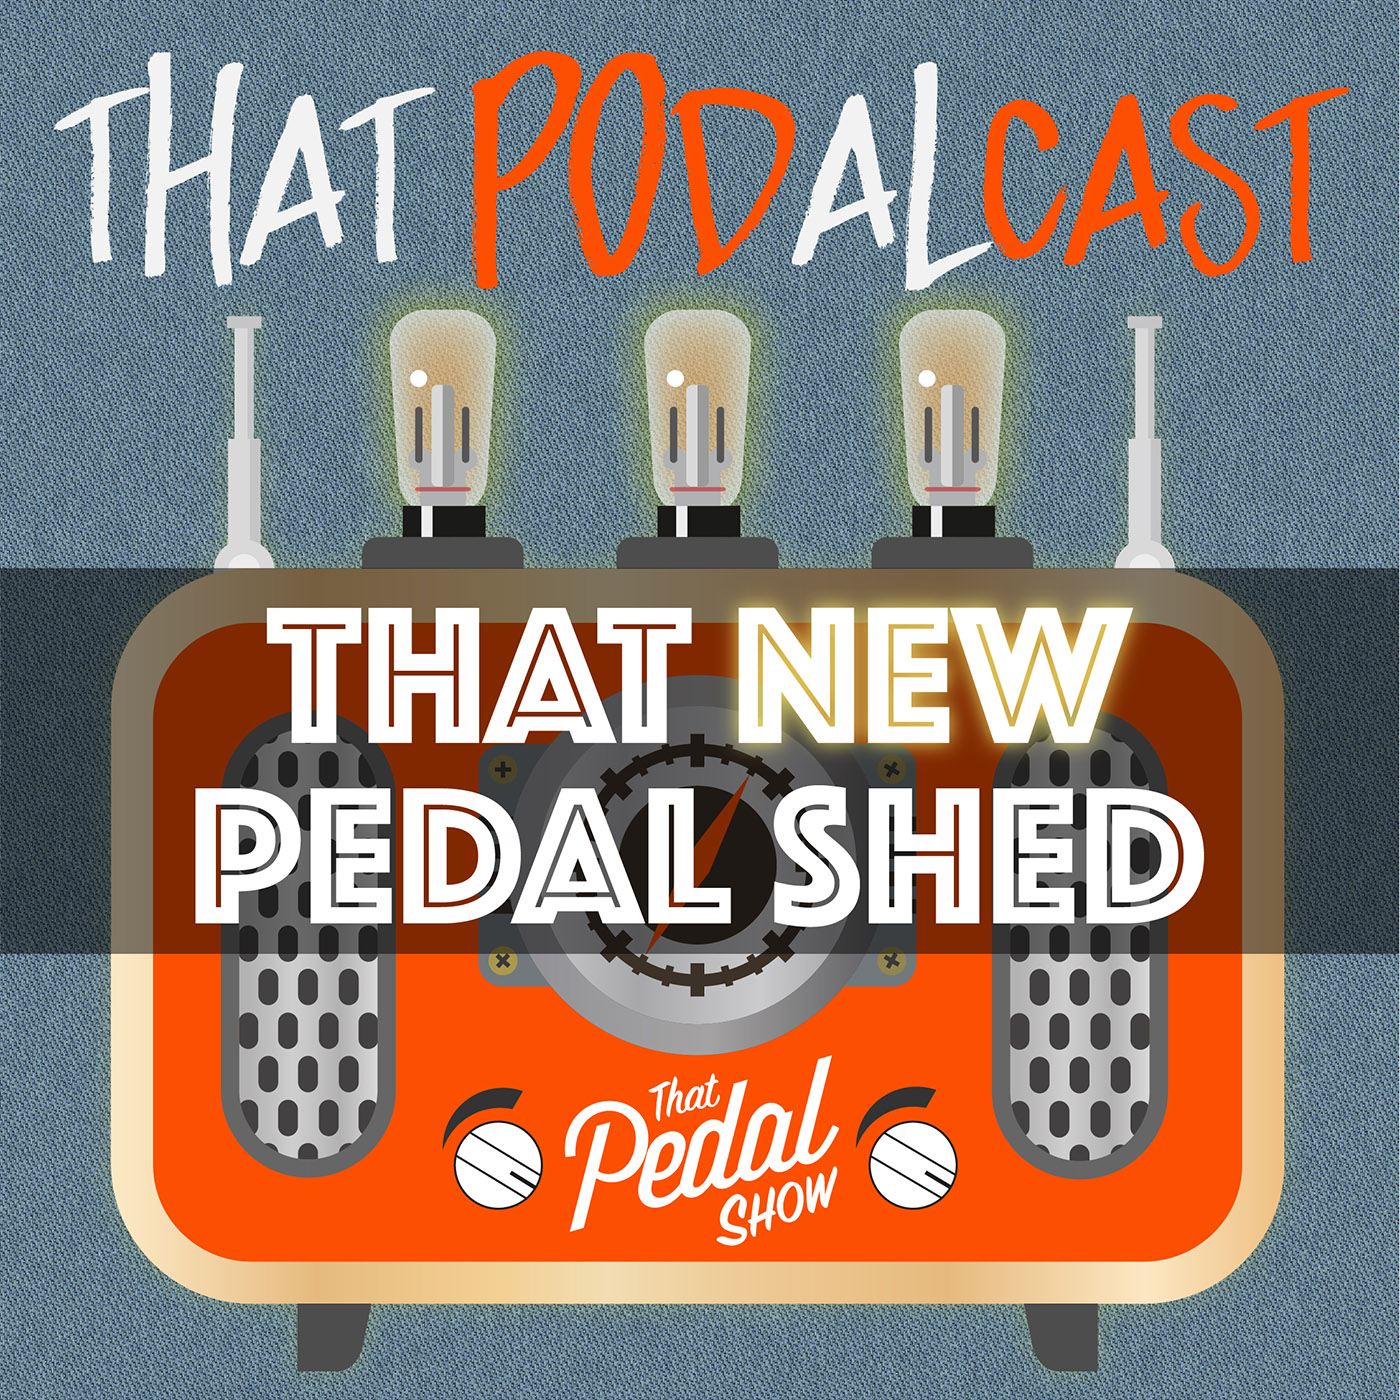 That NEW Pedal Shed – Moving In